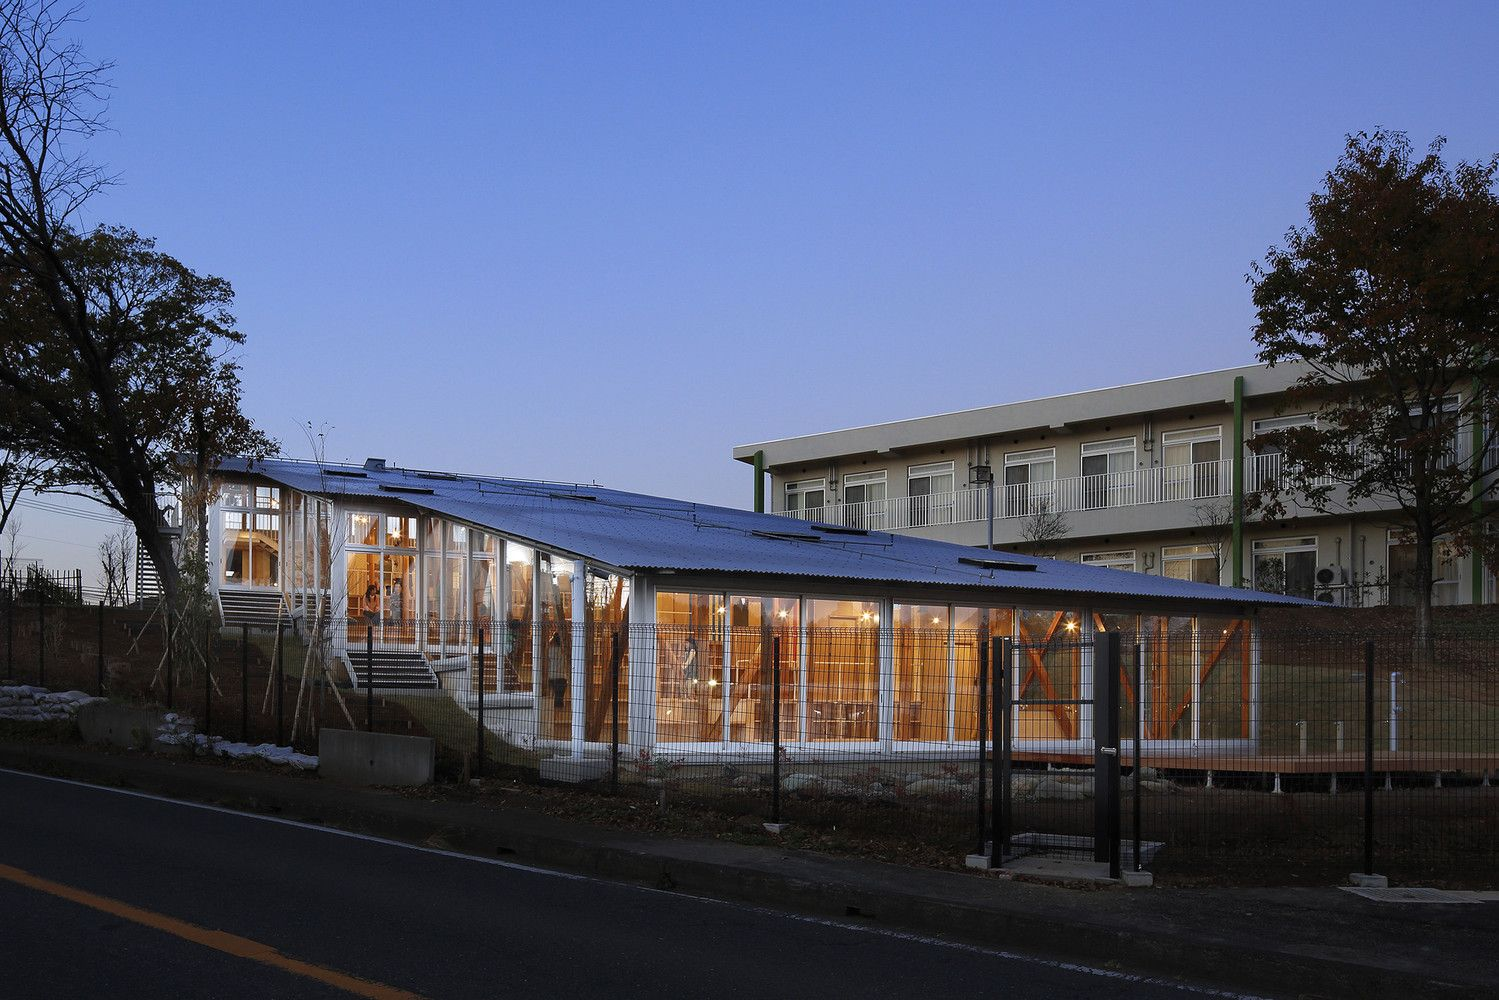 8 Excellent Examples of What Innovative 21st Century Schools Should Look Like,Hakusui Nursery School / Yamazaki Kentaro Design Workshop. Image Cortesía de Yamazaki Kentaro Design Workshop